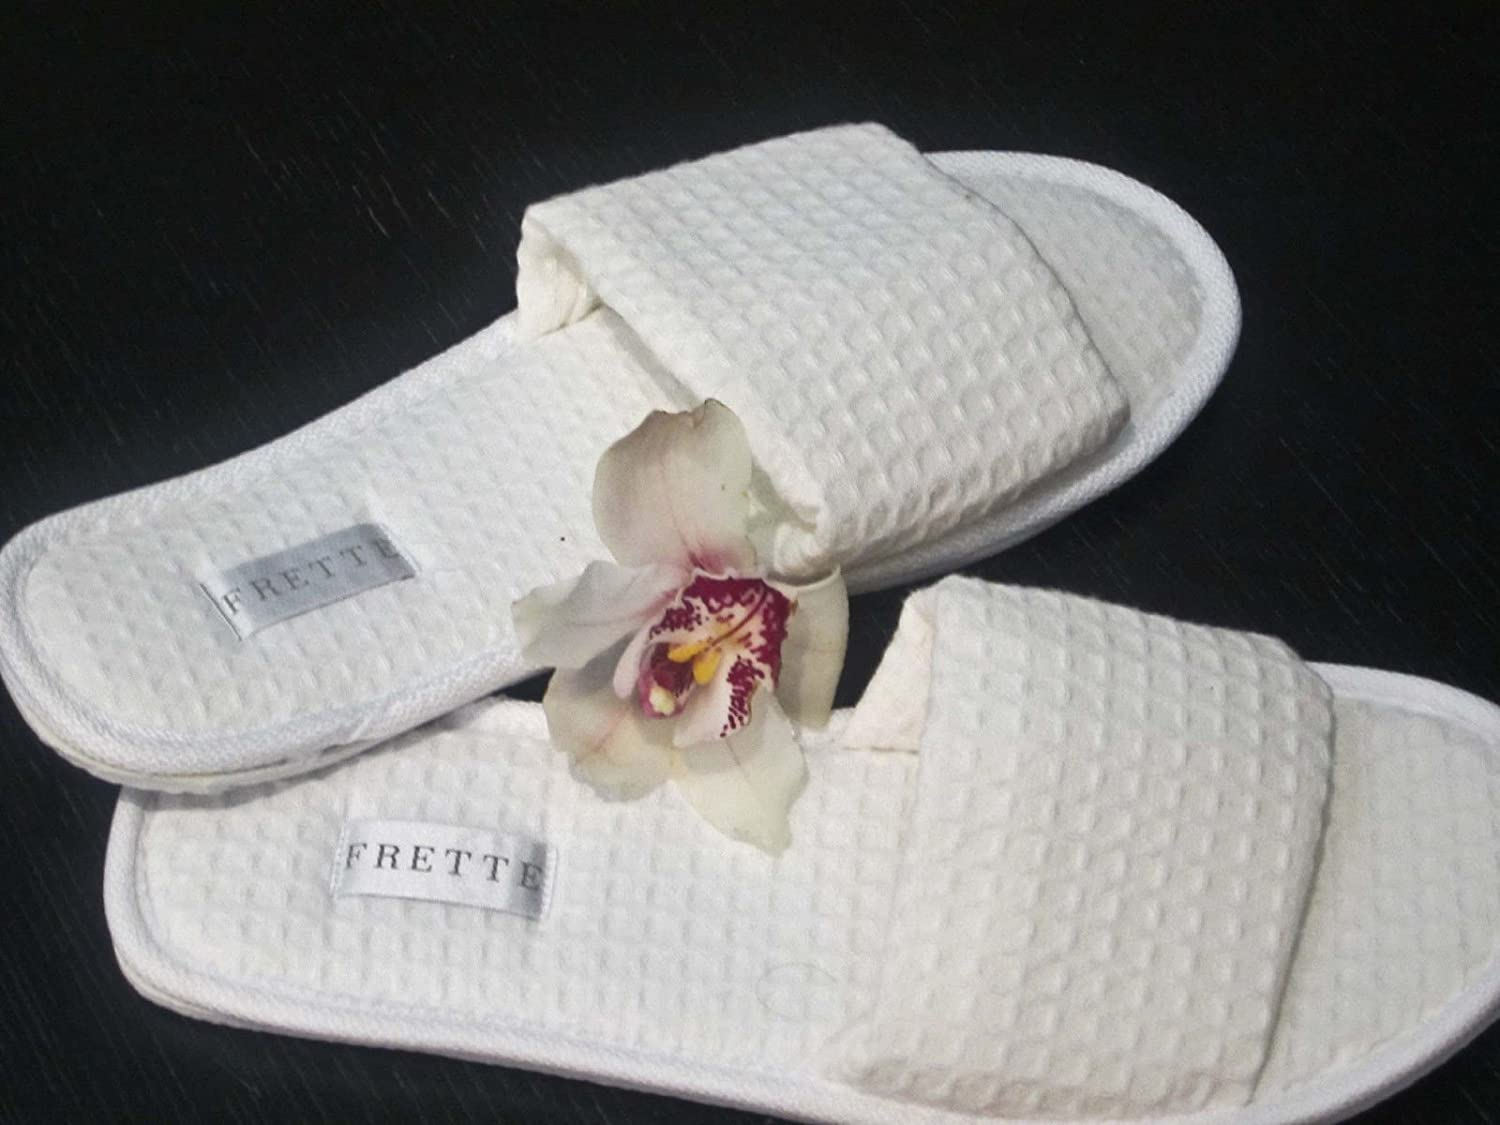 OFFicial mail order FRETTE Hotel Collection White Open-Toe Waffle Weave Spa Slippers Challenge the lowest price of Japan